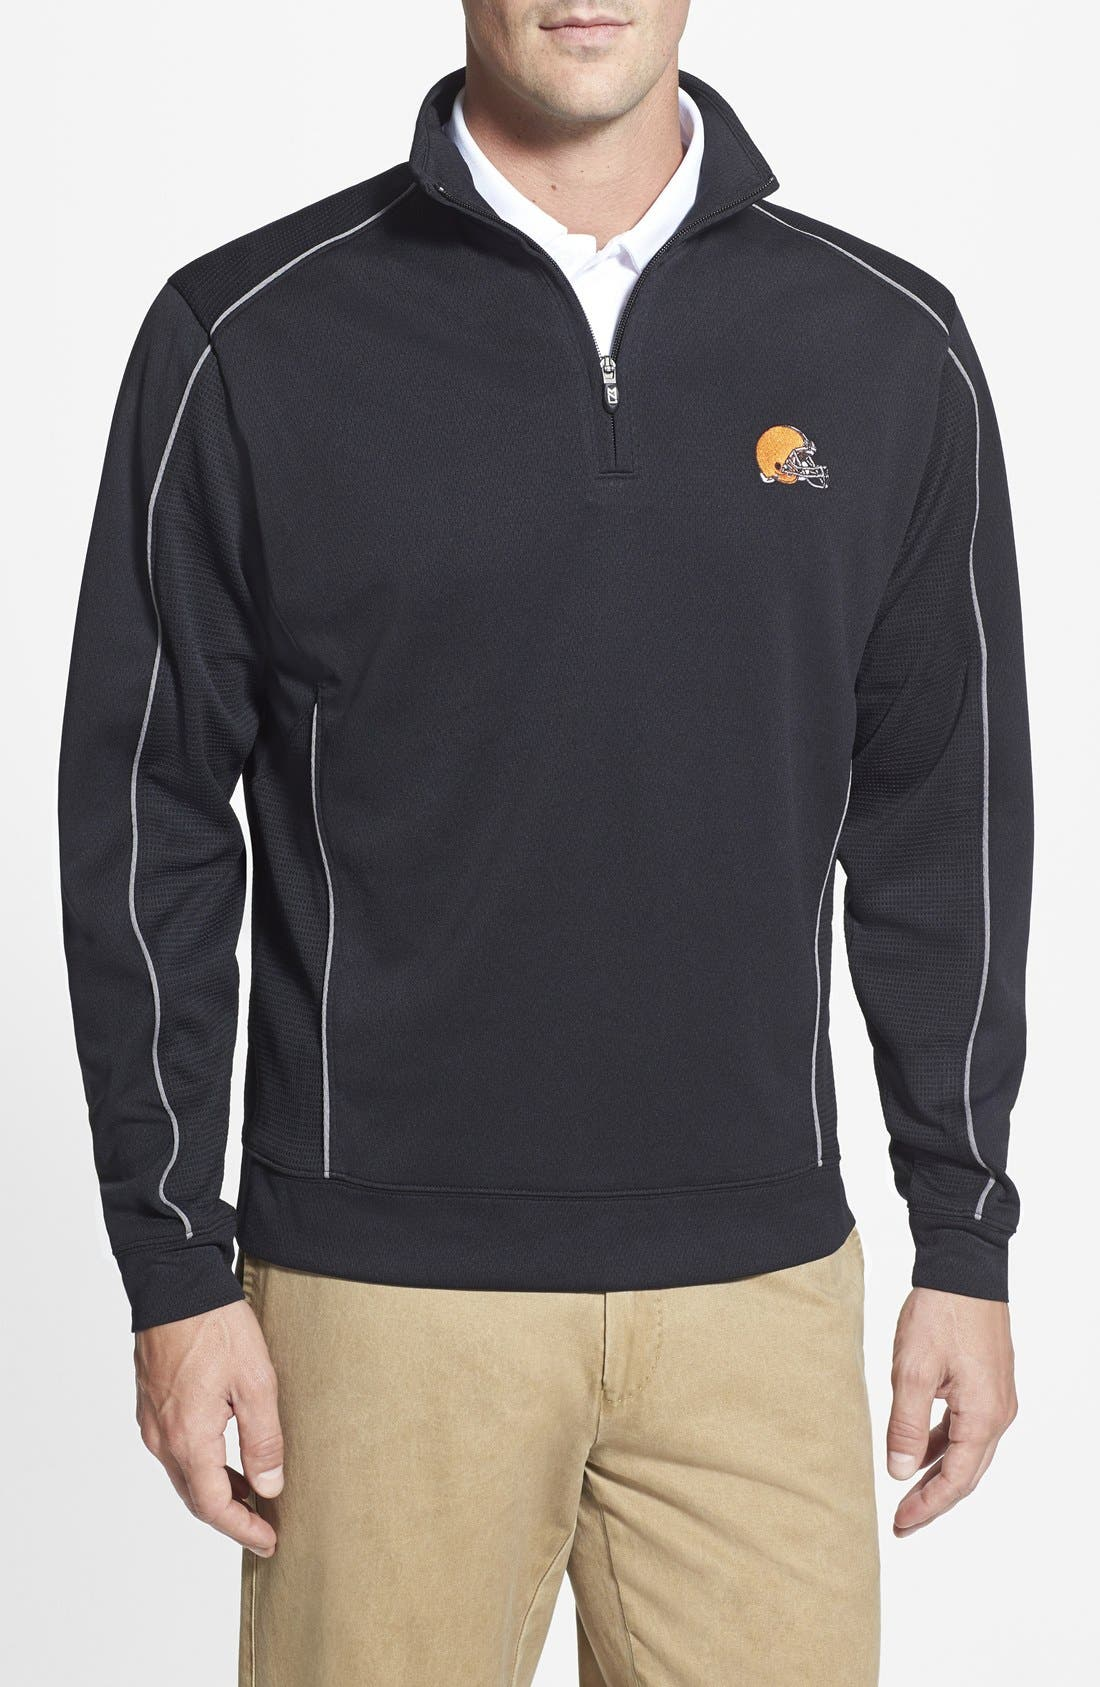 Cleveland Browns - Edge DryTec Moisture Wicking Half Zip Pullover,                             Main thumbnail 1, color,                             001